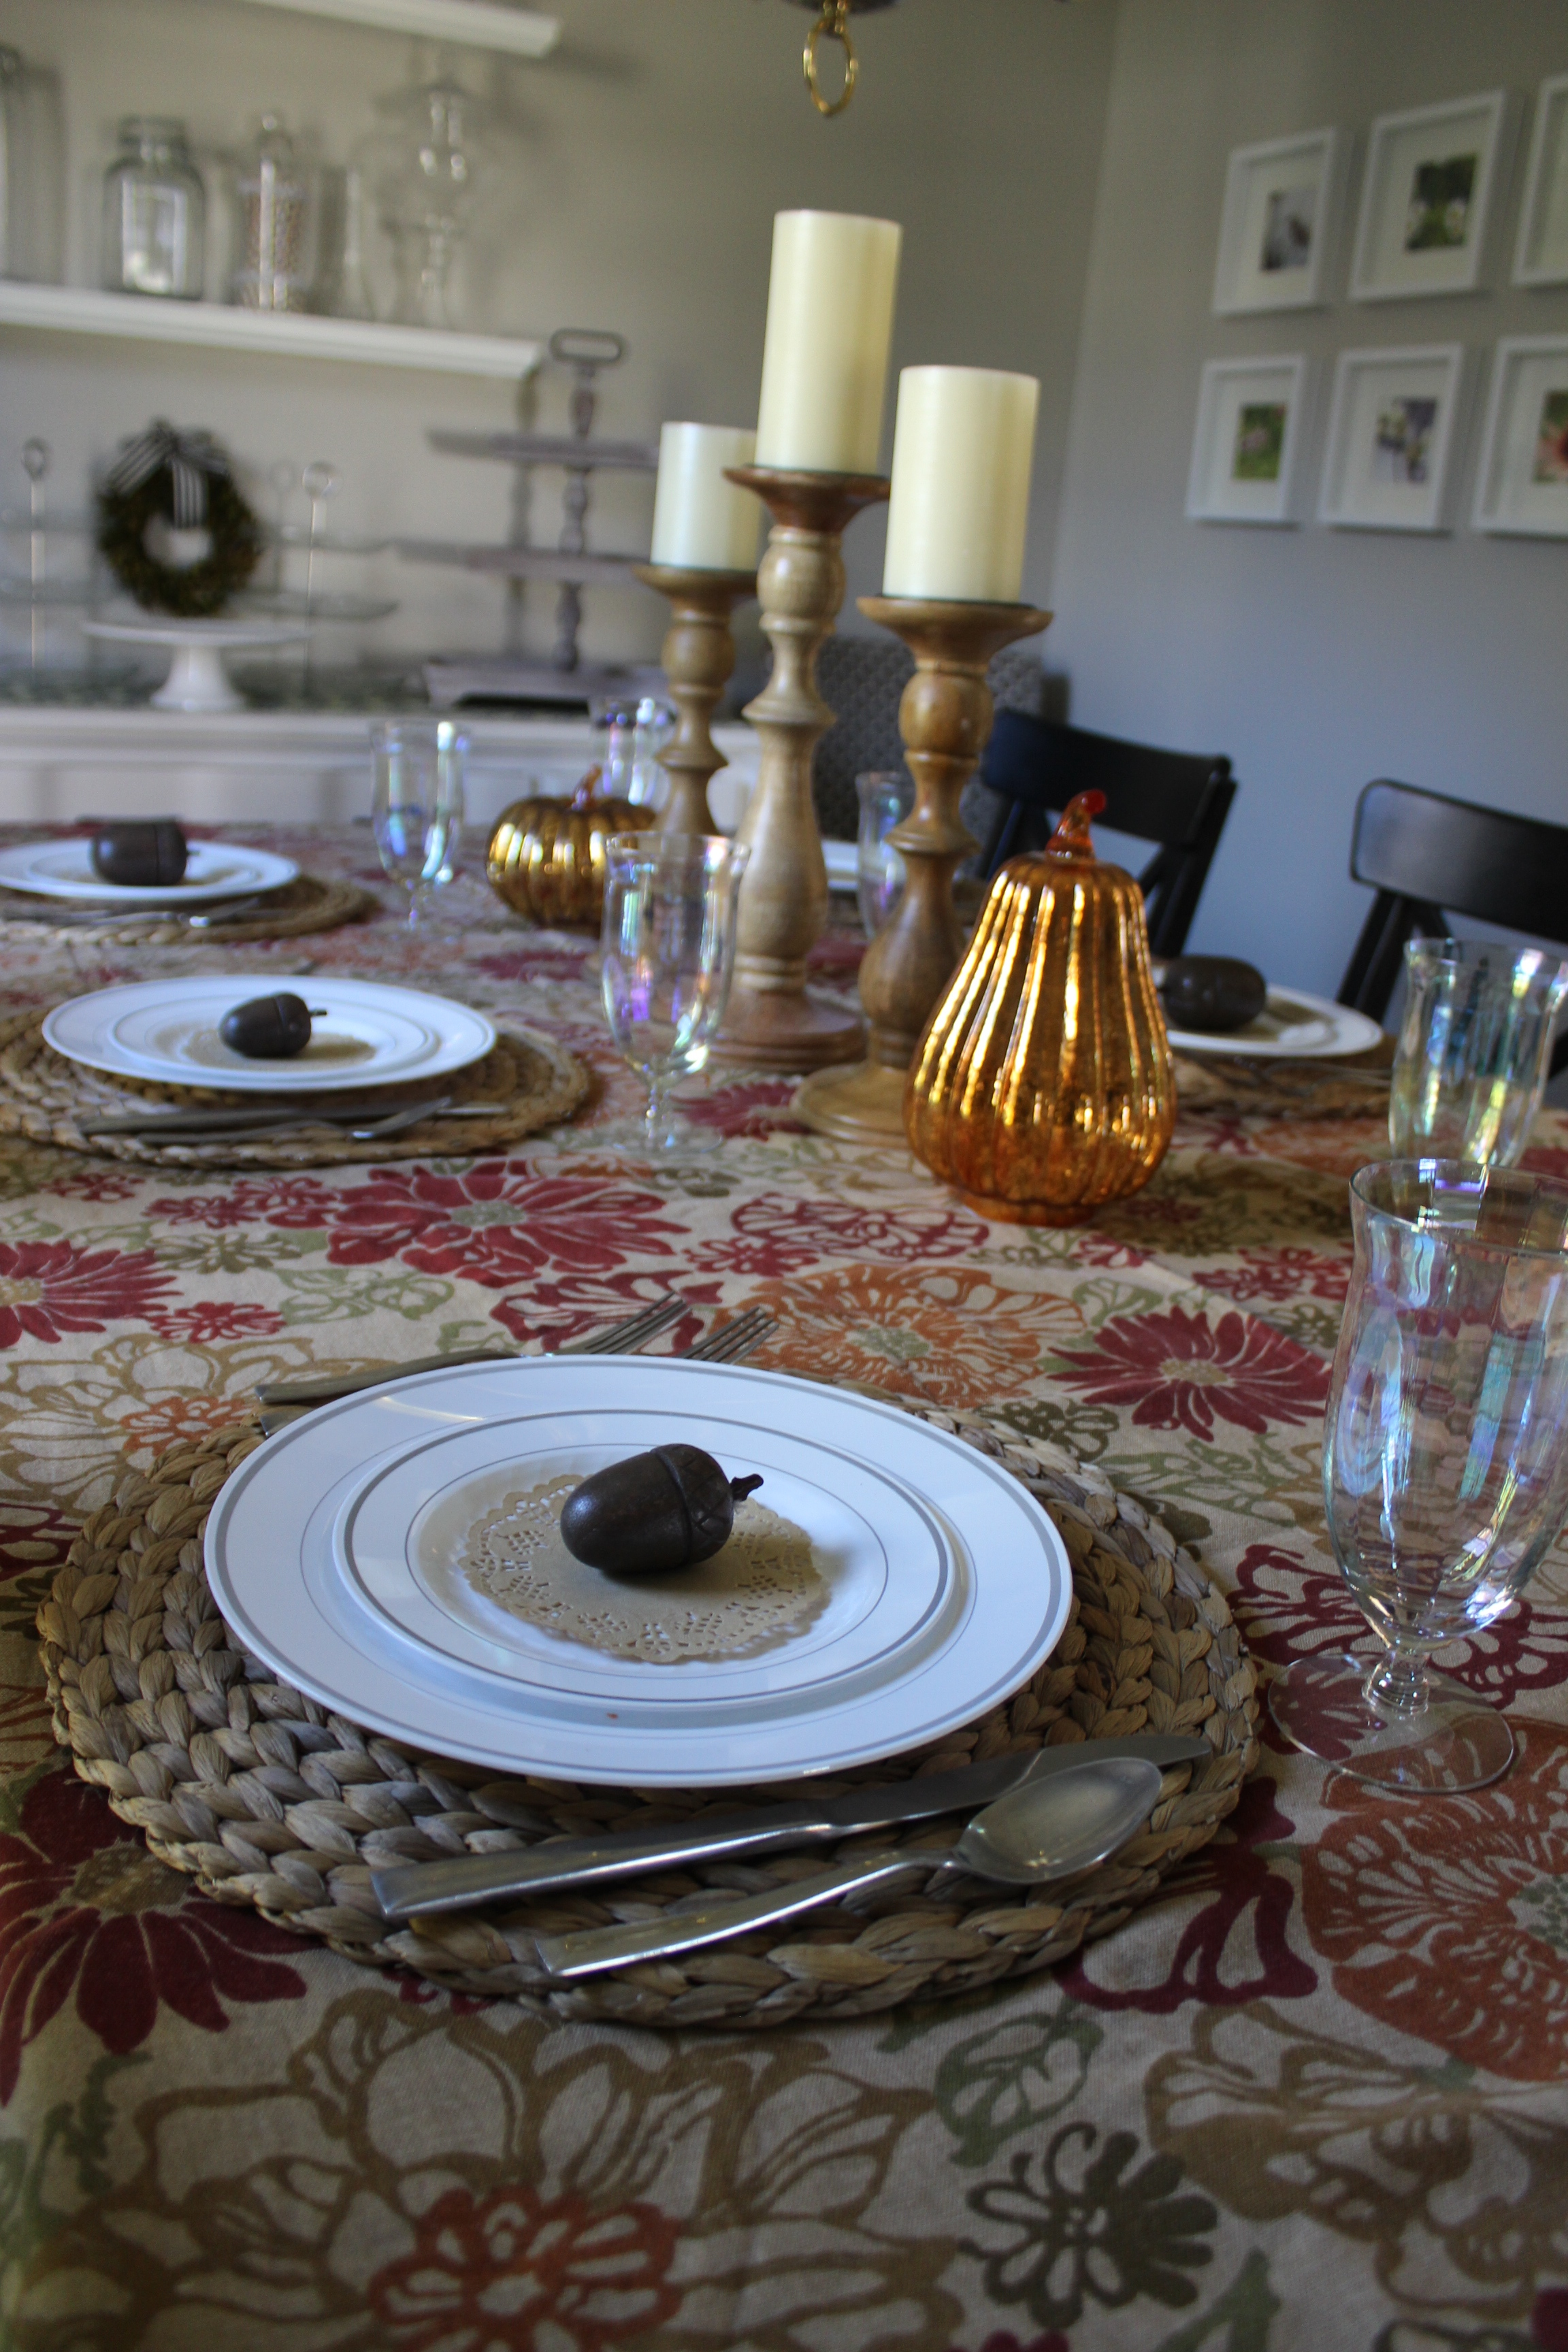 A cheery fall table cloth adds charm to your Thanksgiving table decor